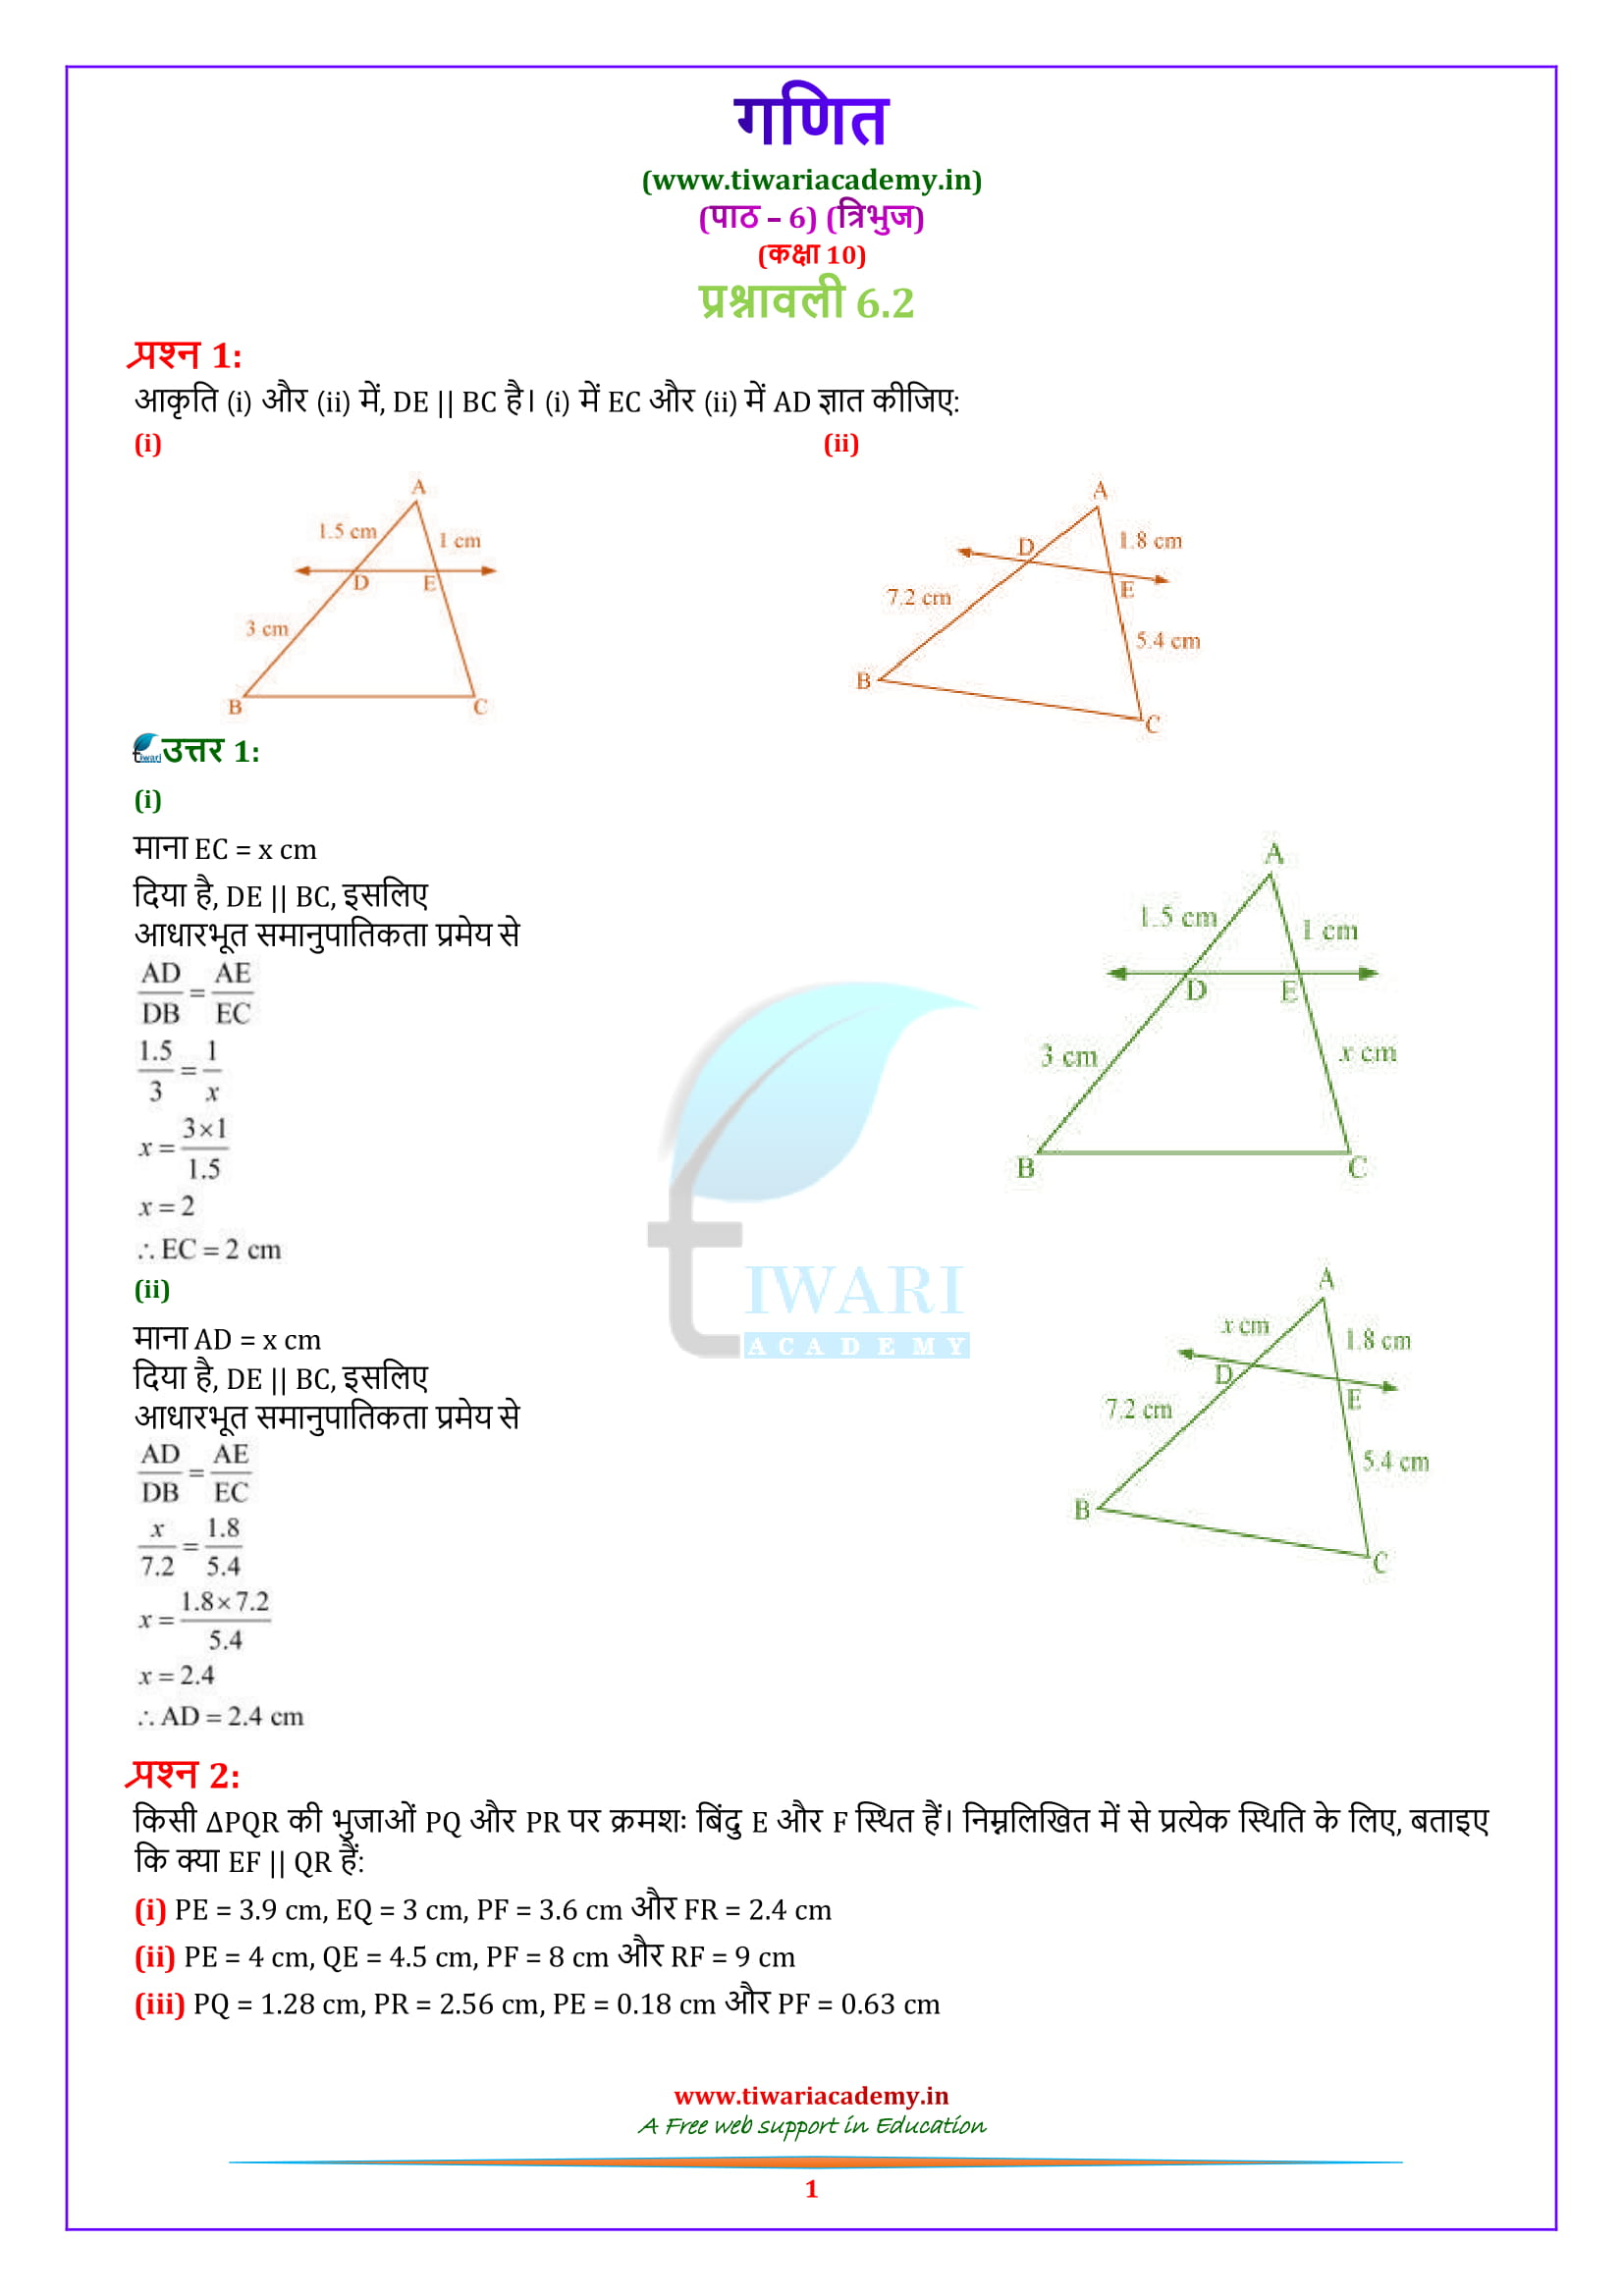 NCERT Solutions for Class 10 Maths Exercise 6.2 in Hindi